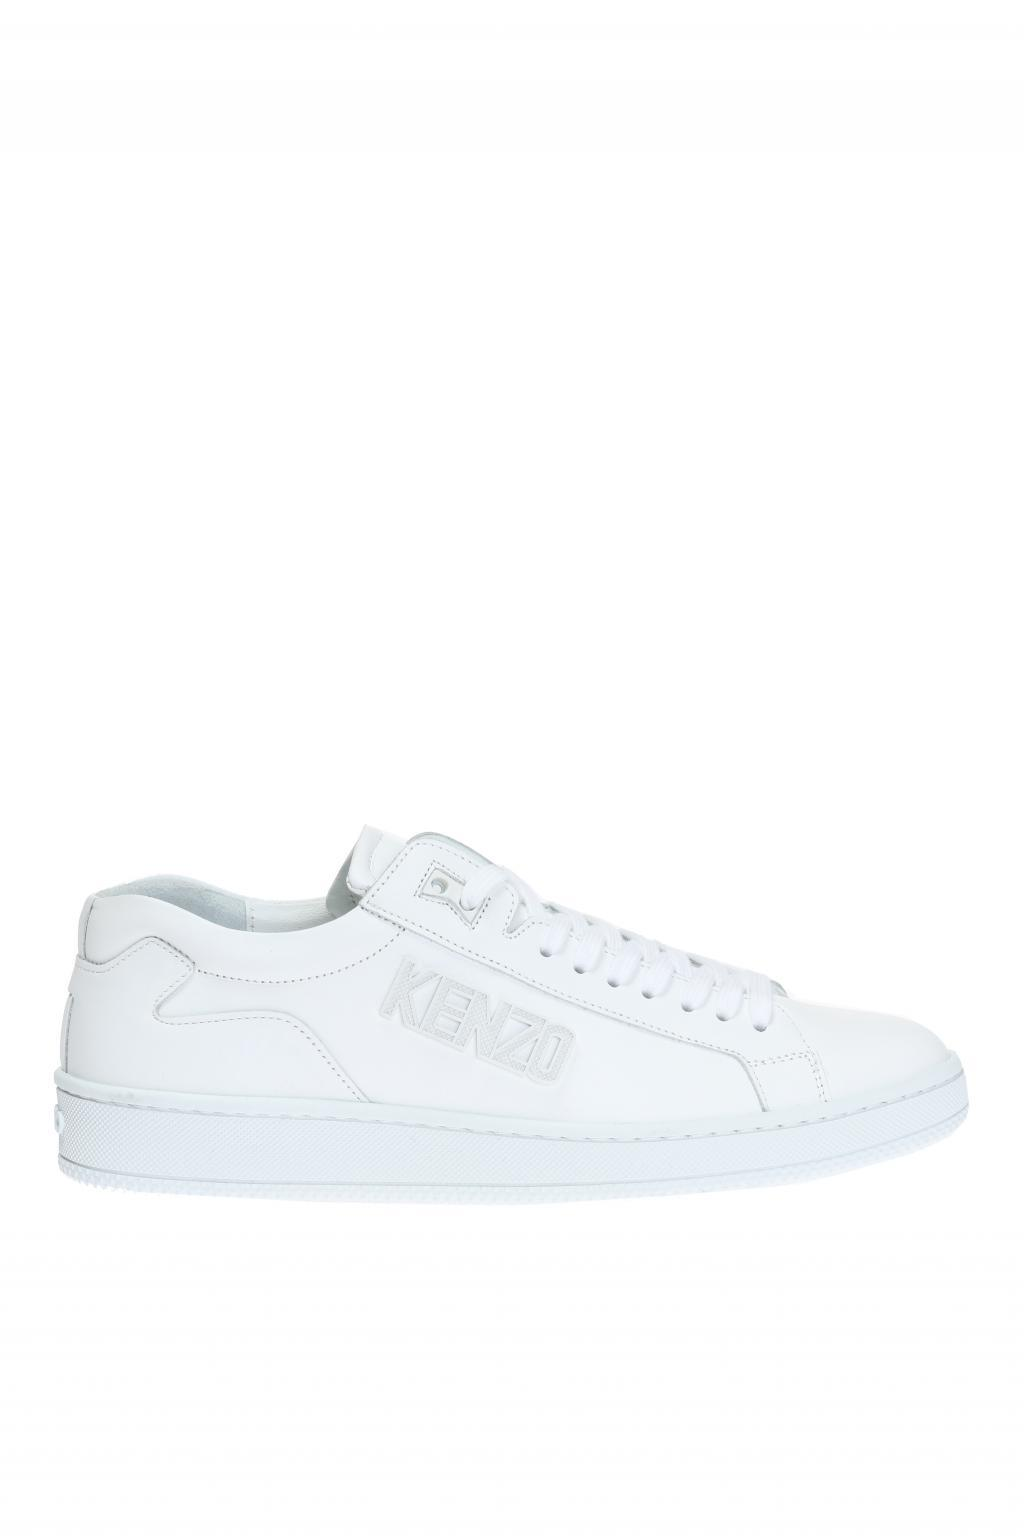 Kenzo White Leather Daisy Sneakers